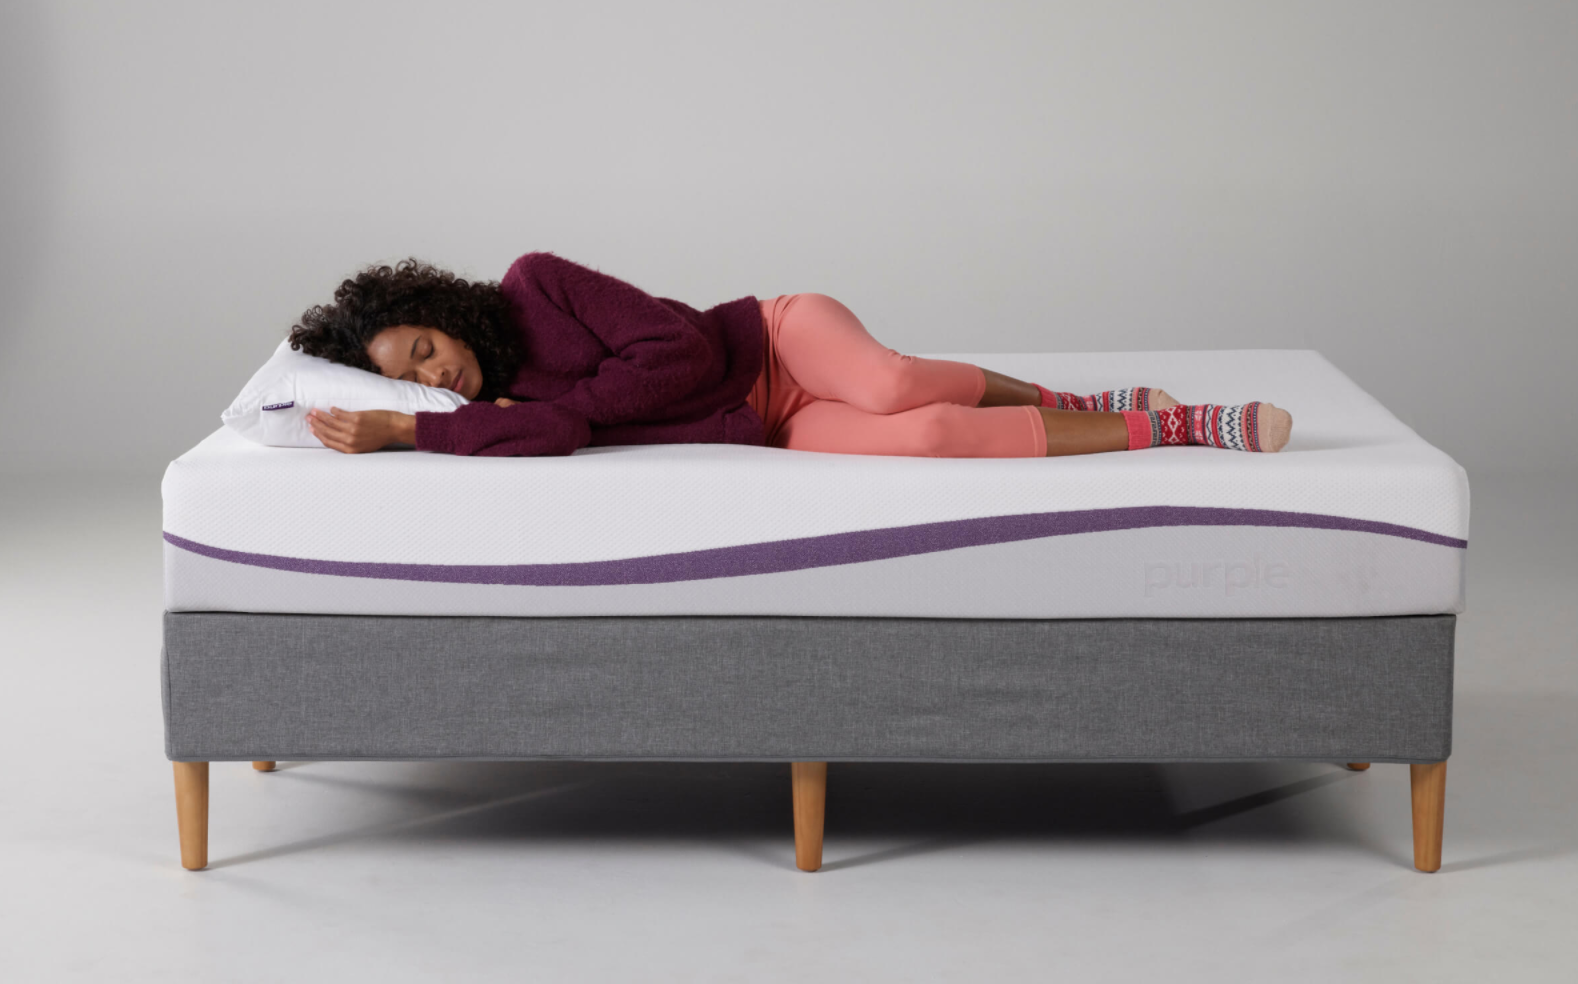 how mattress affects your health